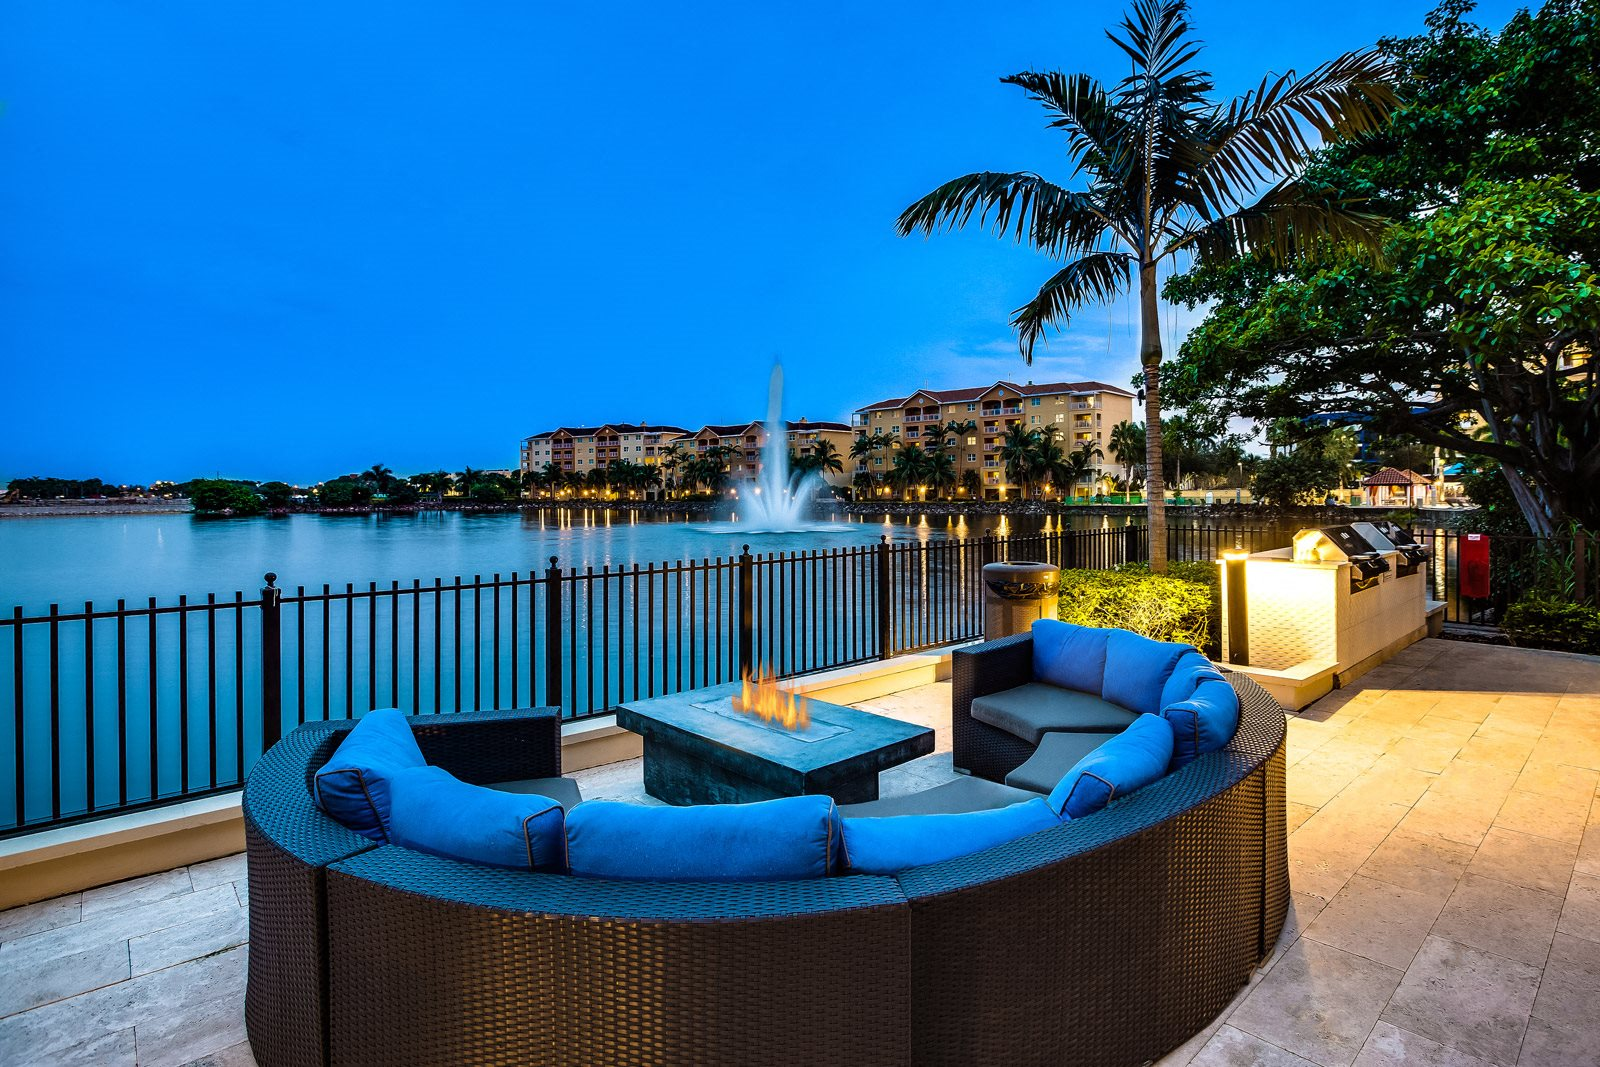 Relaxing Outdoor Lounge Area with Fire Pit at Windsor at Doral, 4401 NW 87th Avenue, Doral